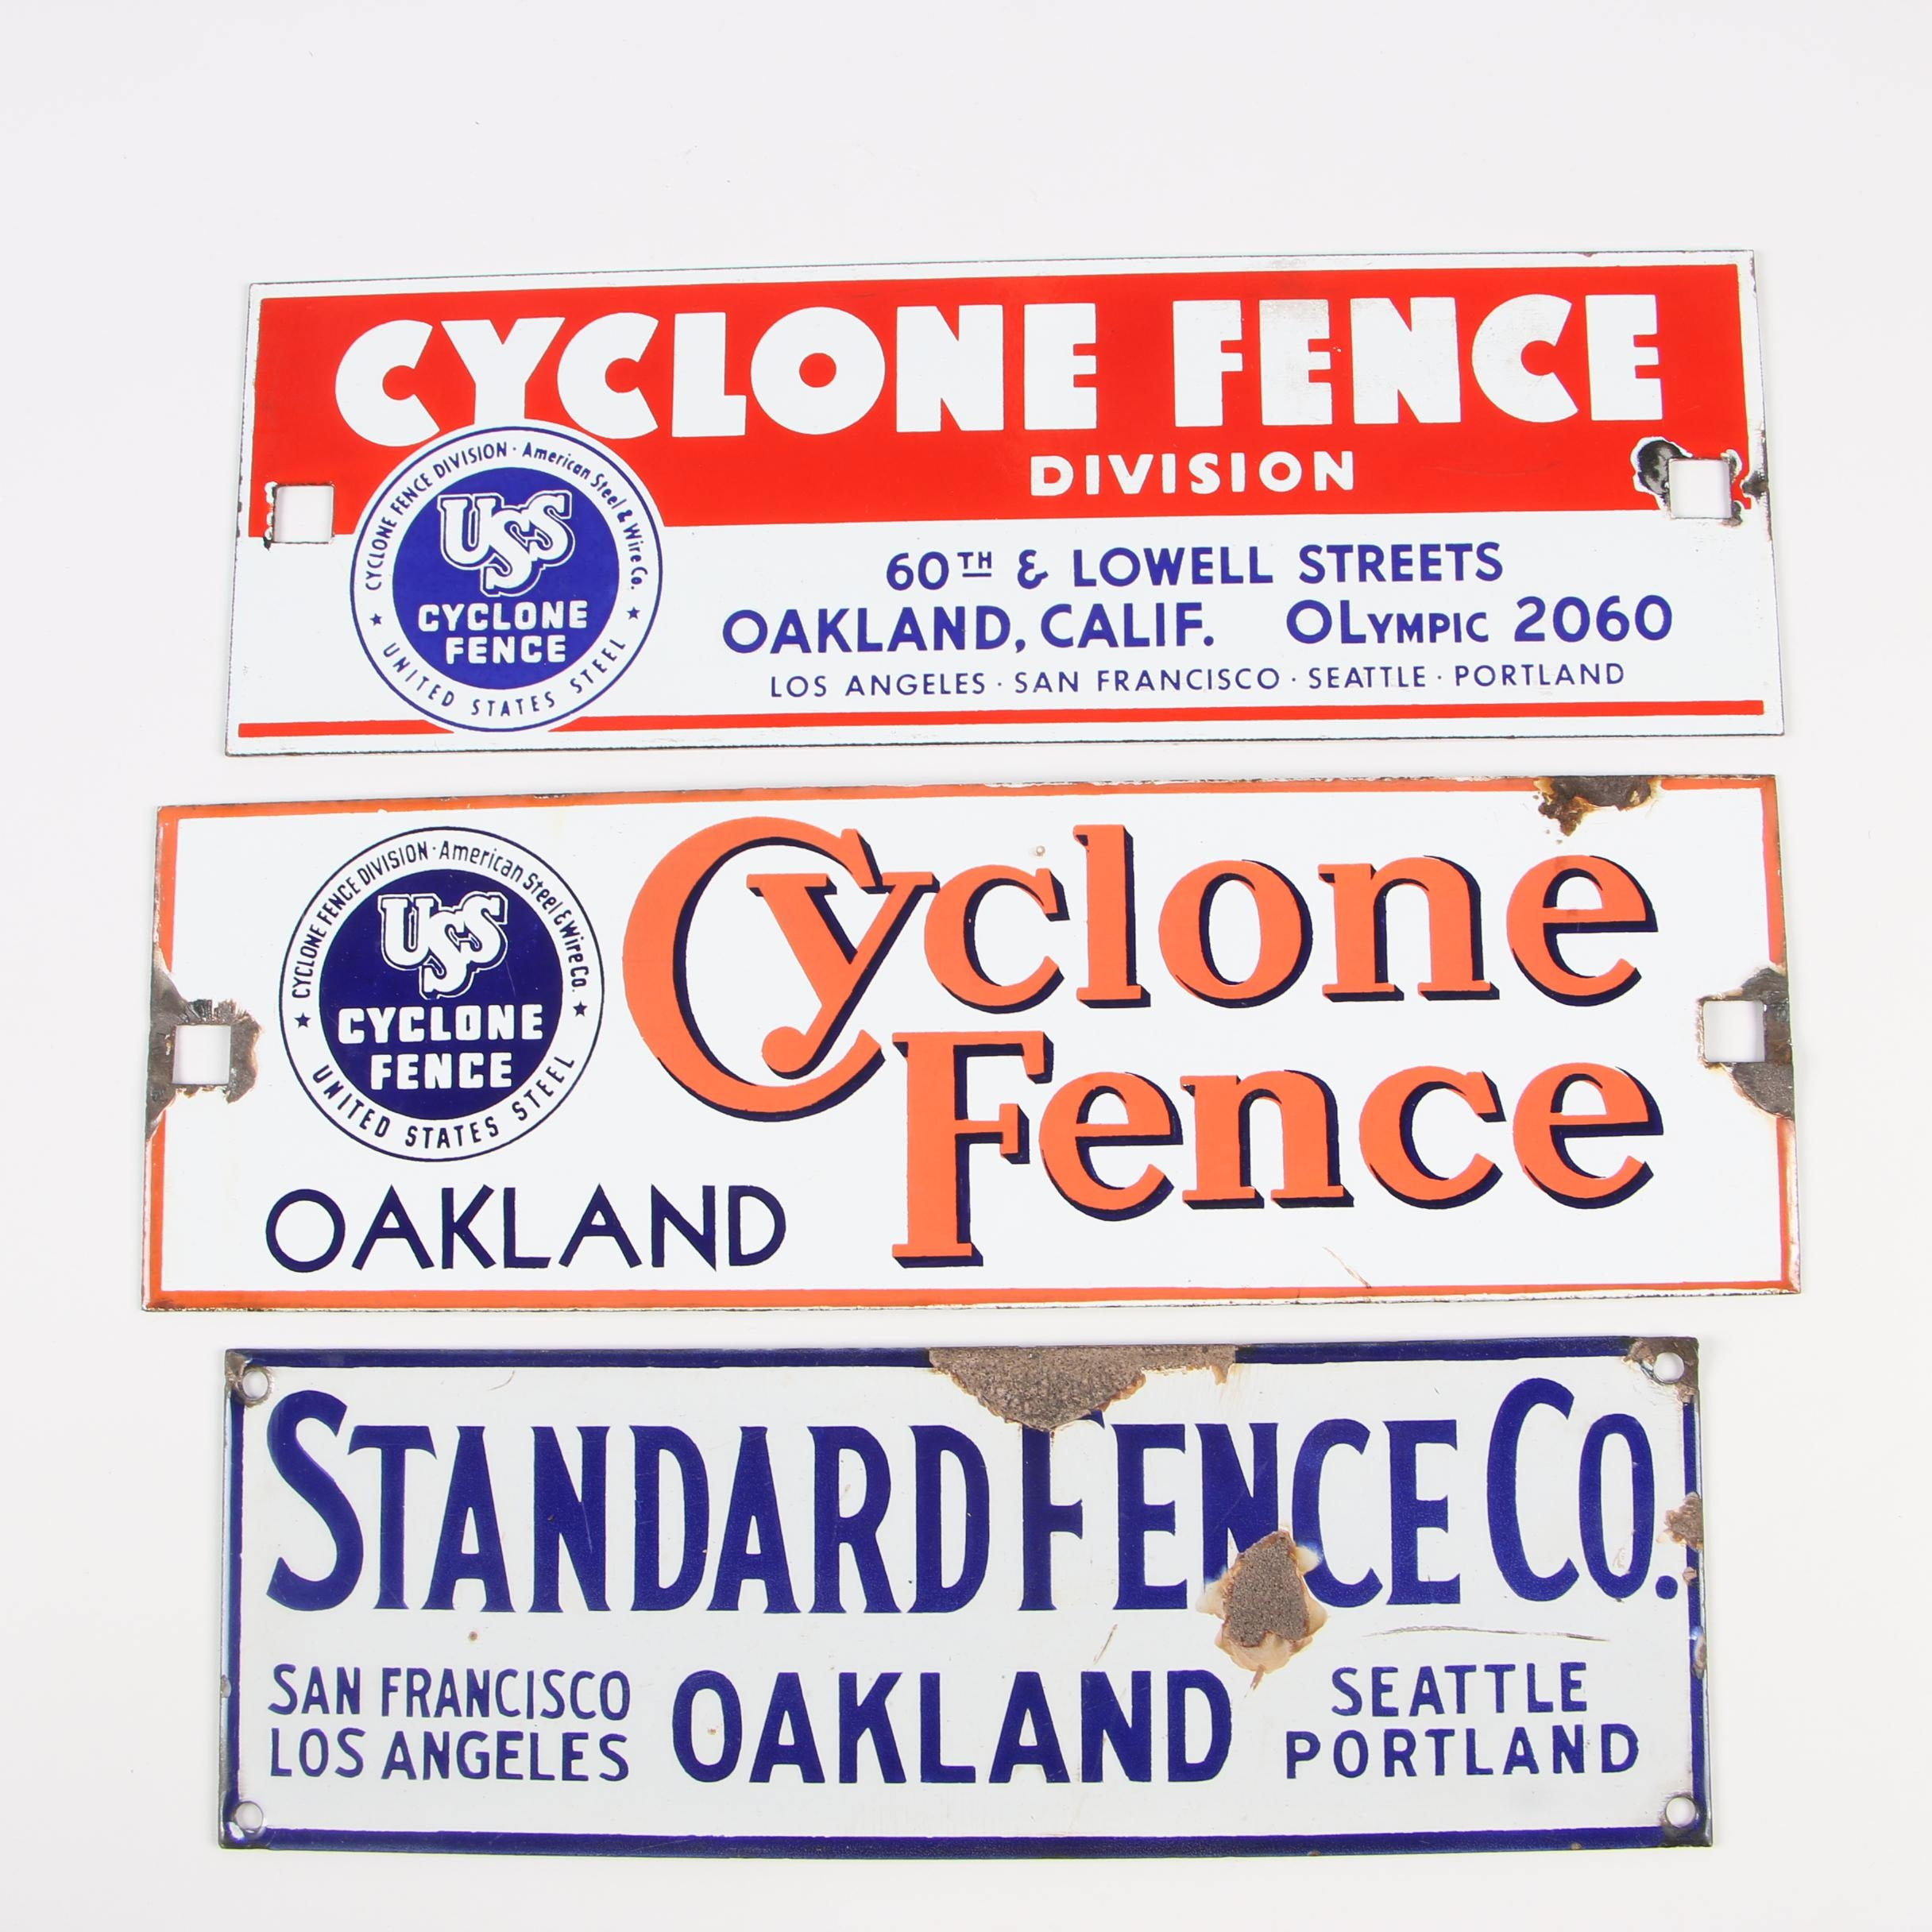 Cyclone Fence and Standard Fence Co. Enameled Metal Signs